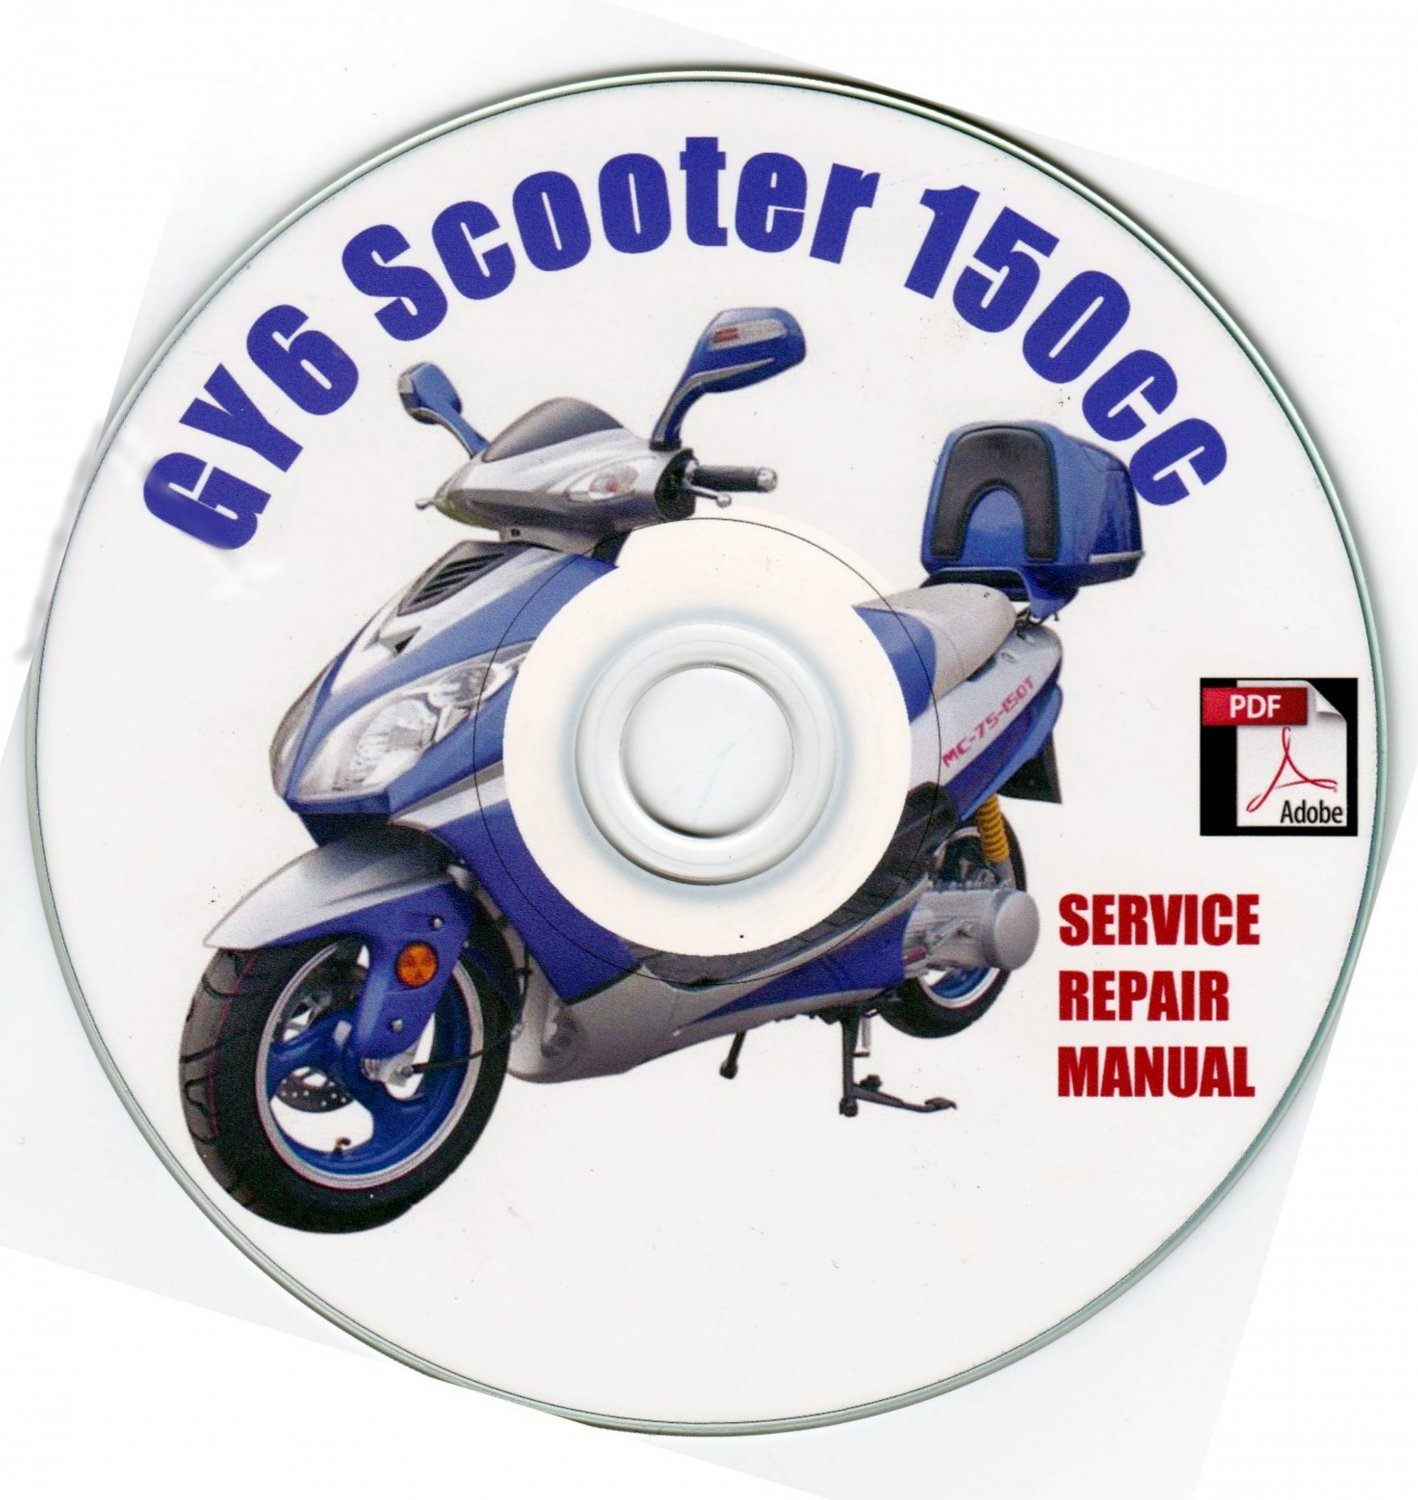 150 Scooter 150cc GY6 Service Repair Manual Tank SUNL Vento Peace Sports VIP Madami